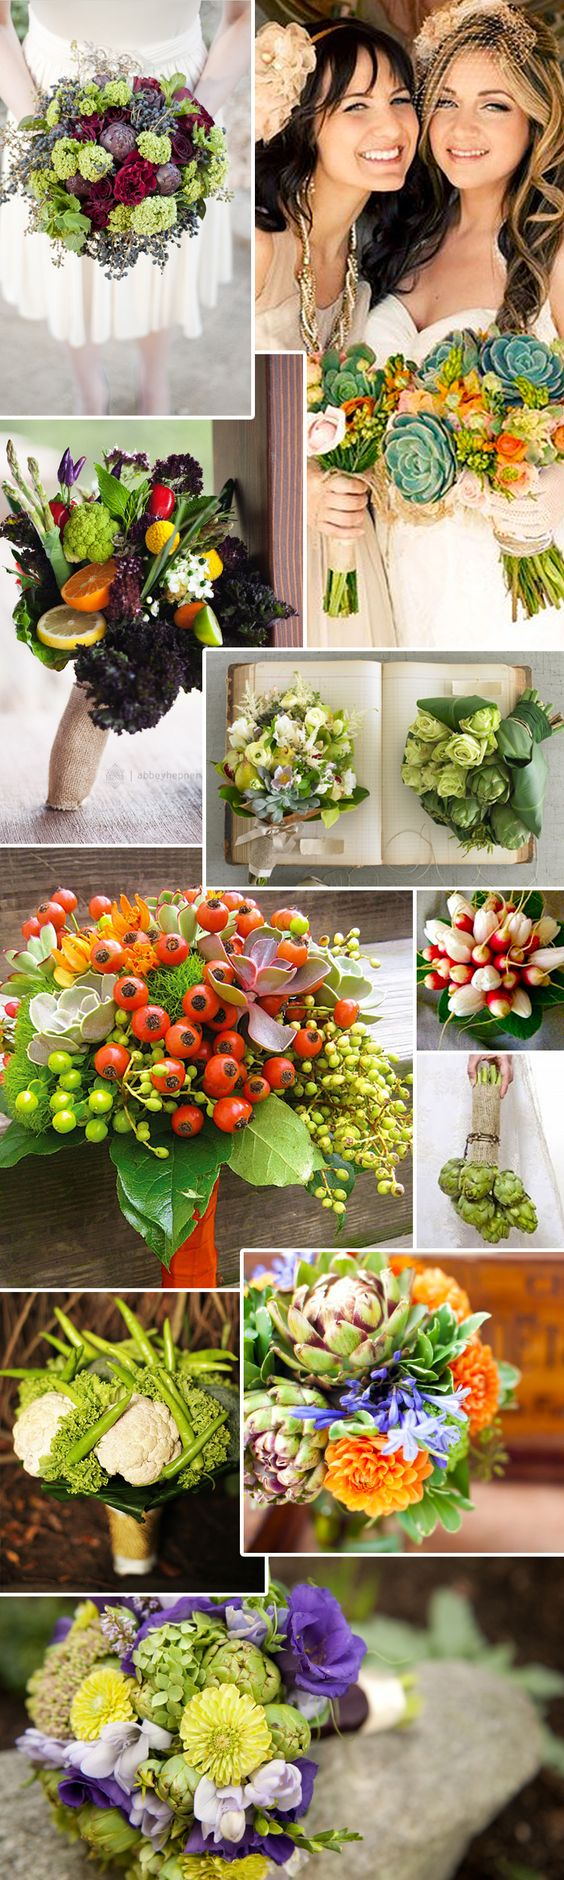 the world s catalog of ideas xiao s wedding pigi alice wedding schmeck wedding wedding herb foodie wedding graduation wedding edible wedding inspired wedding